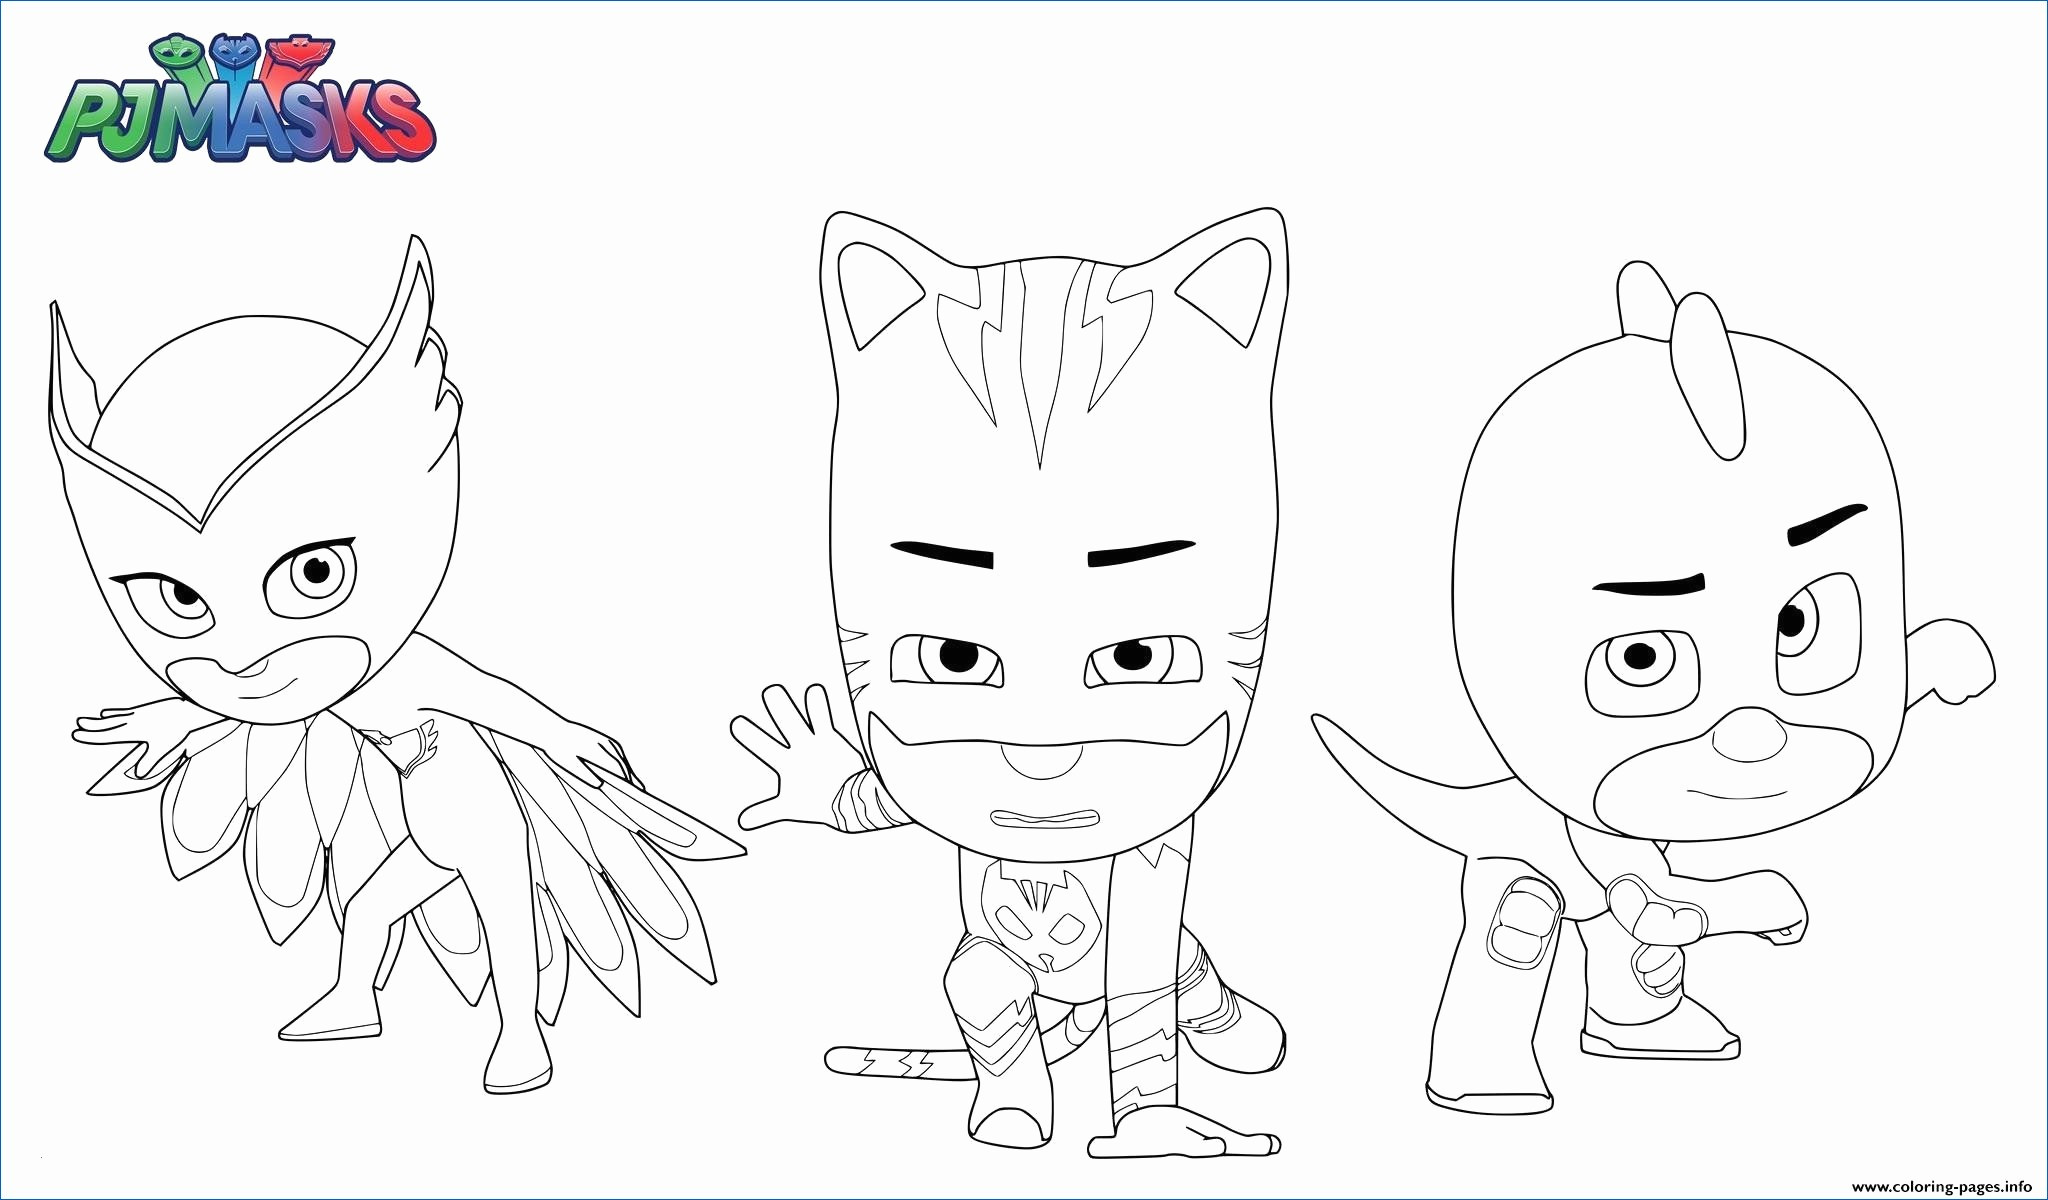 Pj Masks Ausmalbilder Das Beste Von Pj Mask Coloring Pages Amazing Pj Masks Drawing at Getdrawings Bild